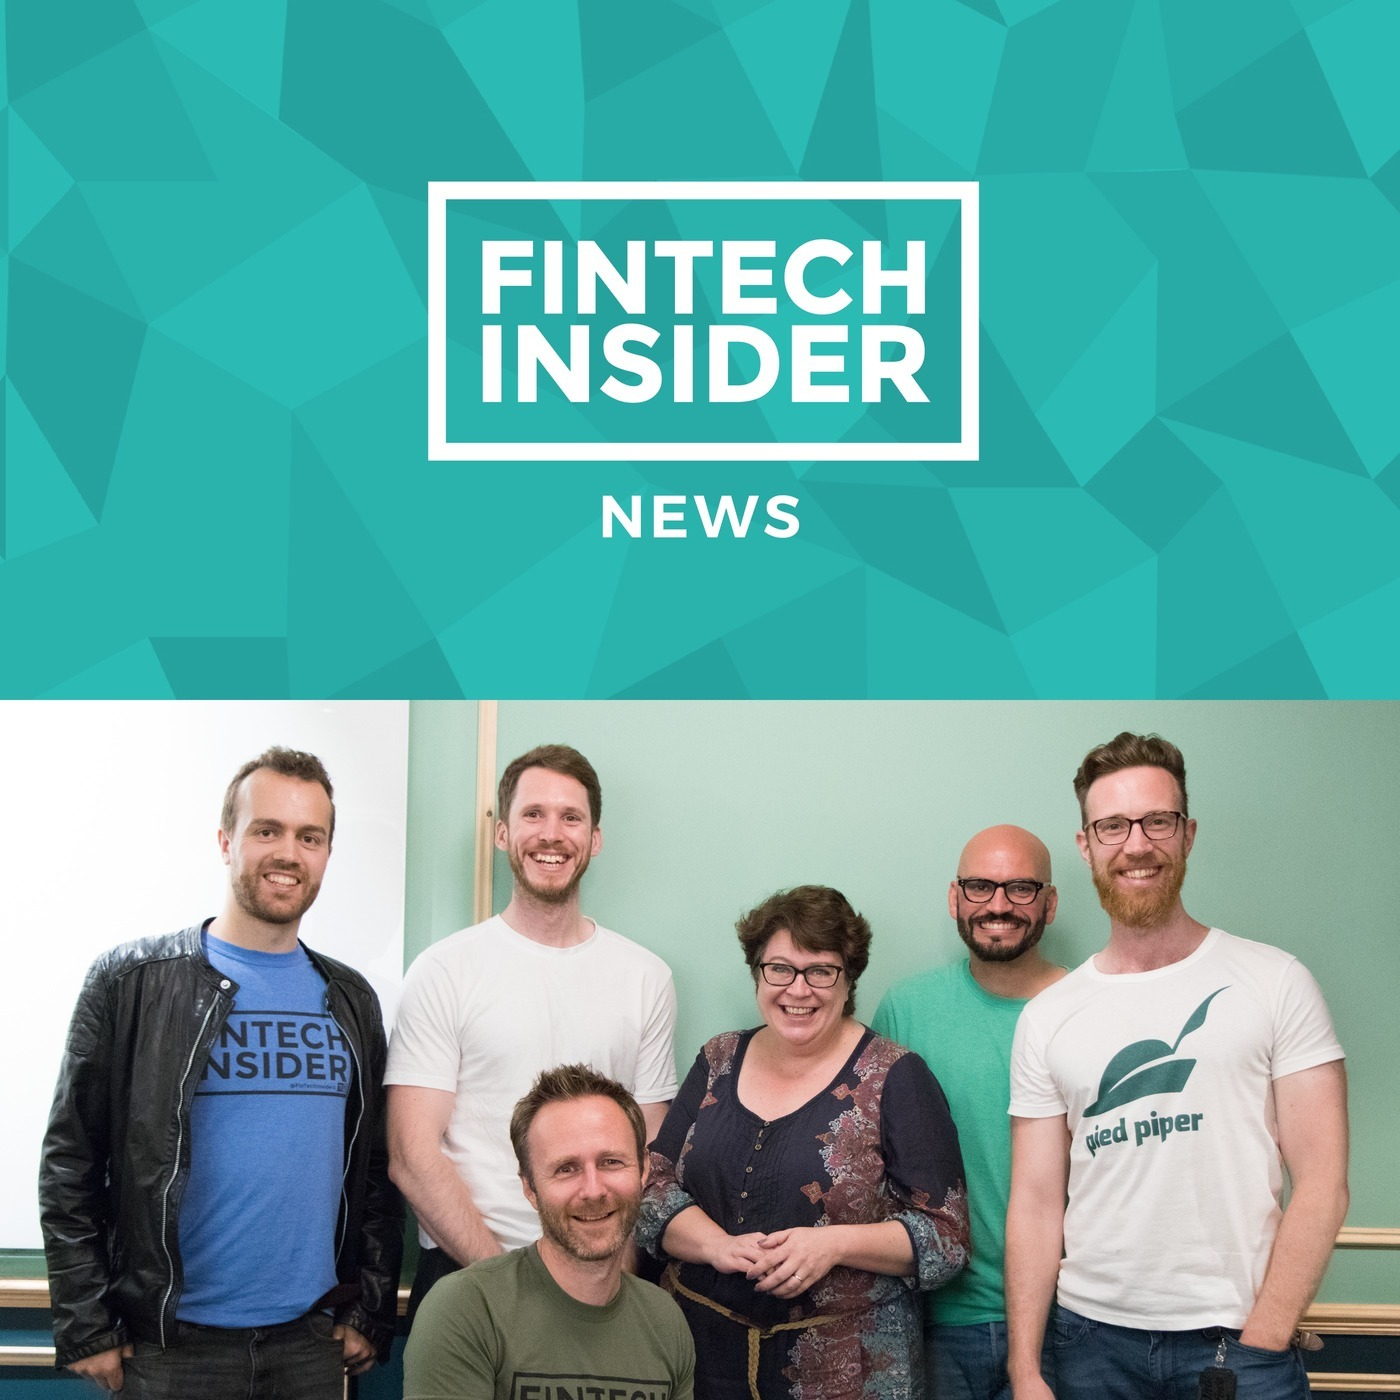 Fintech Insider by 11:FS: Ep. 125. News: Are you bad when you're big?